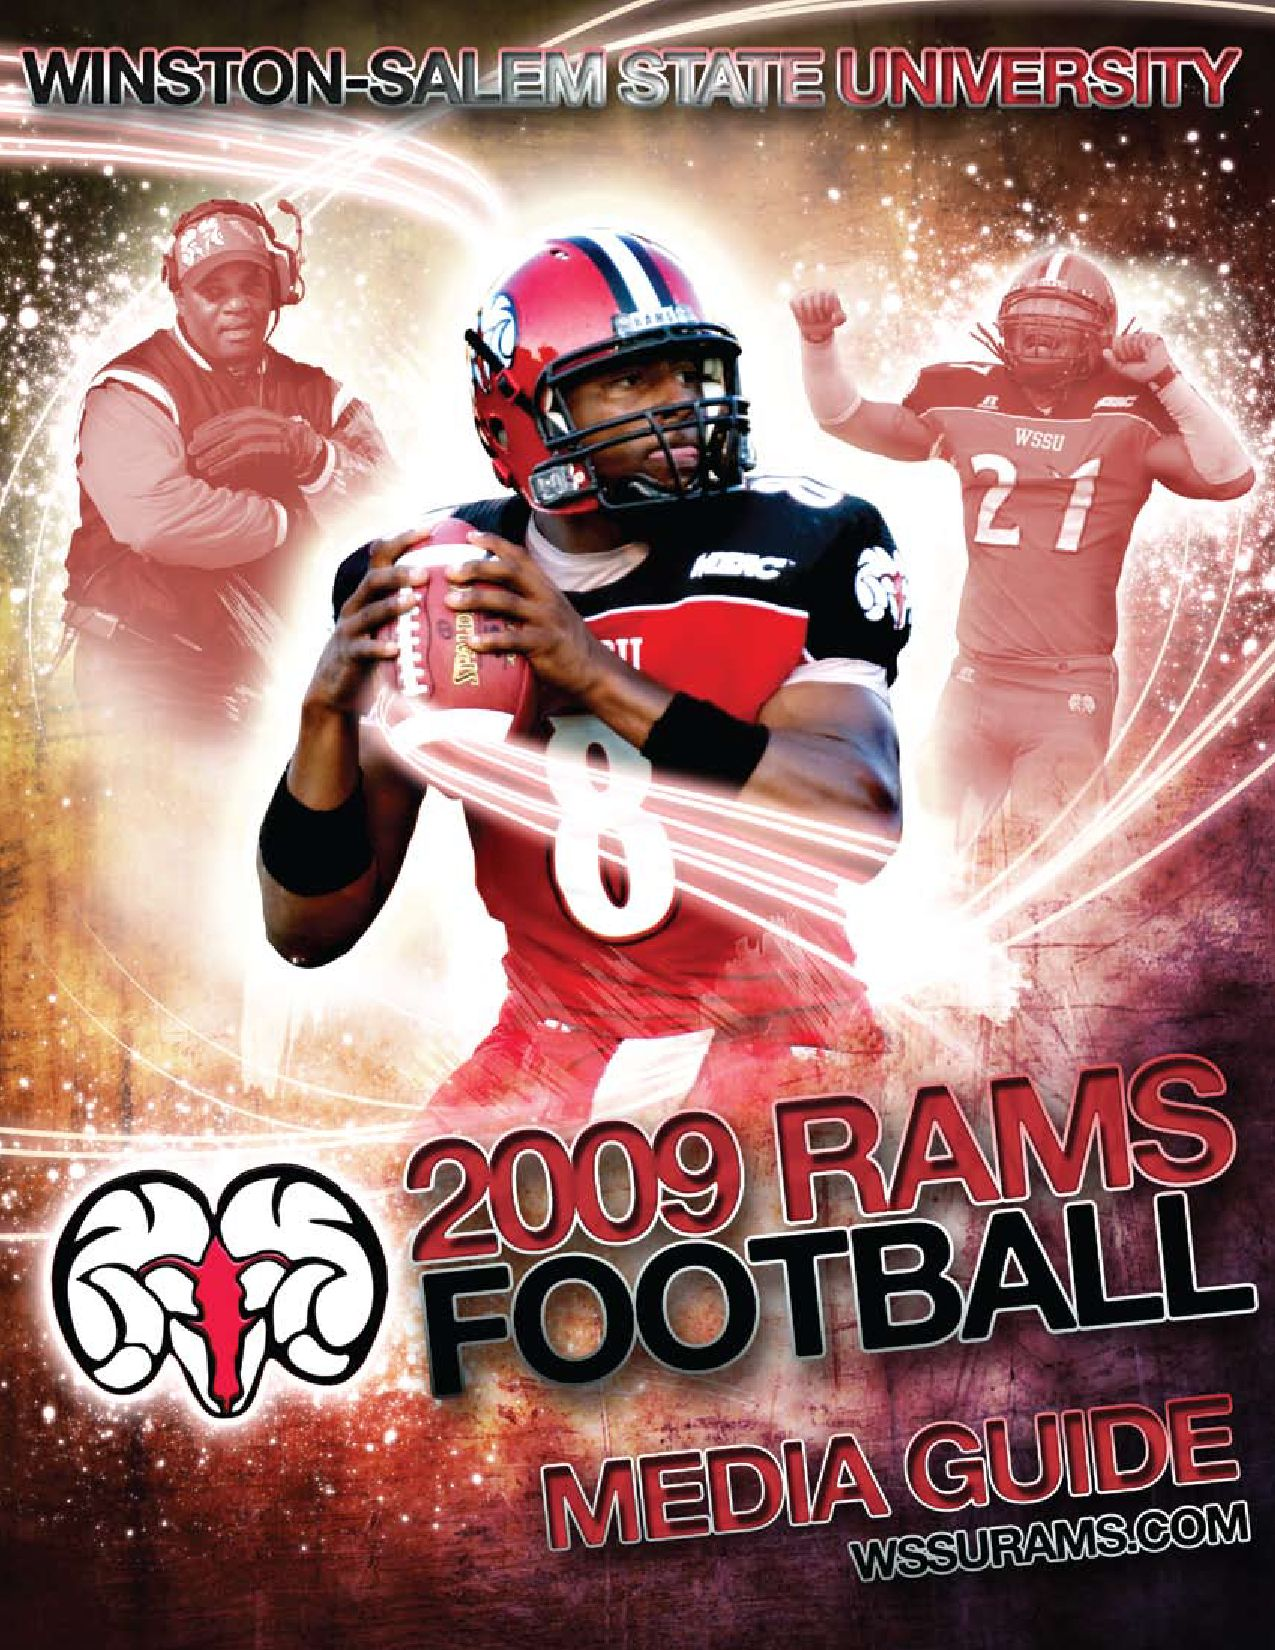 New 2009 WSSU Football Media Guide by Winston Salem State University  supplier